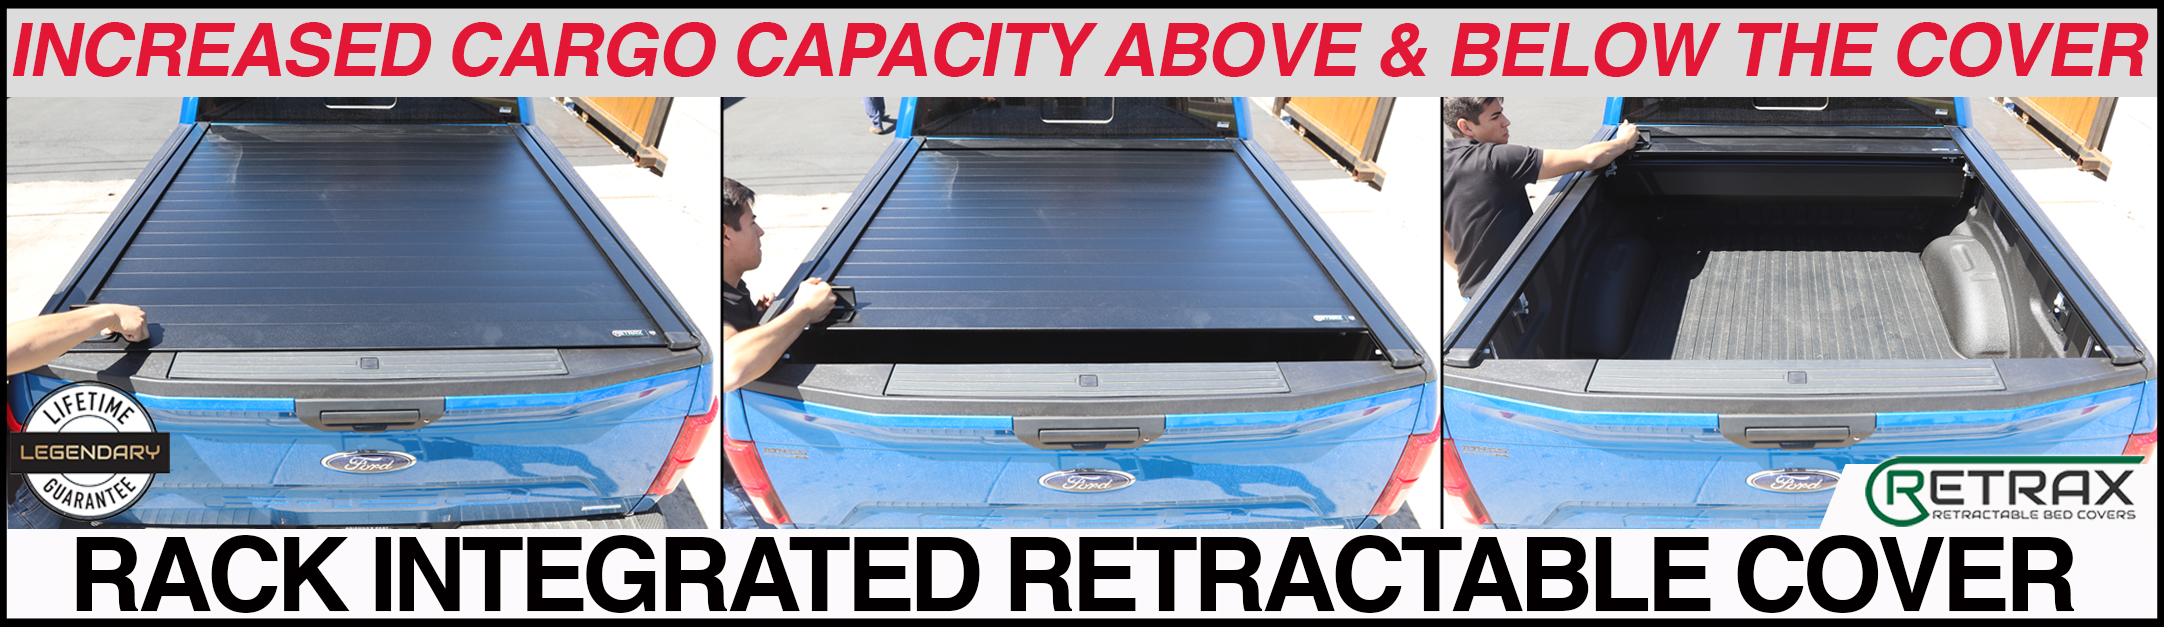 RETRAXPRO XR TONNEAU COVERS